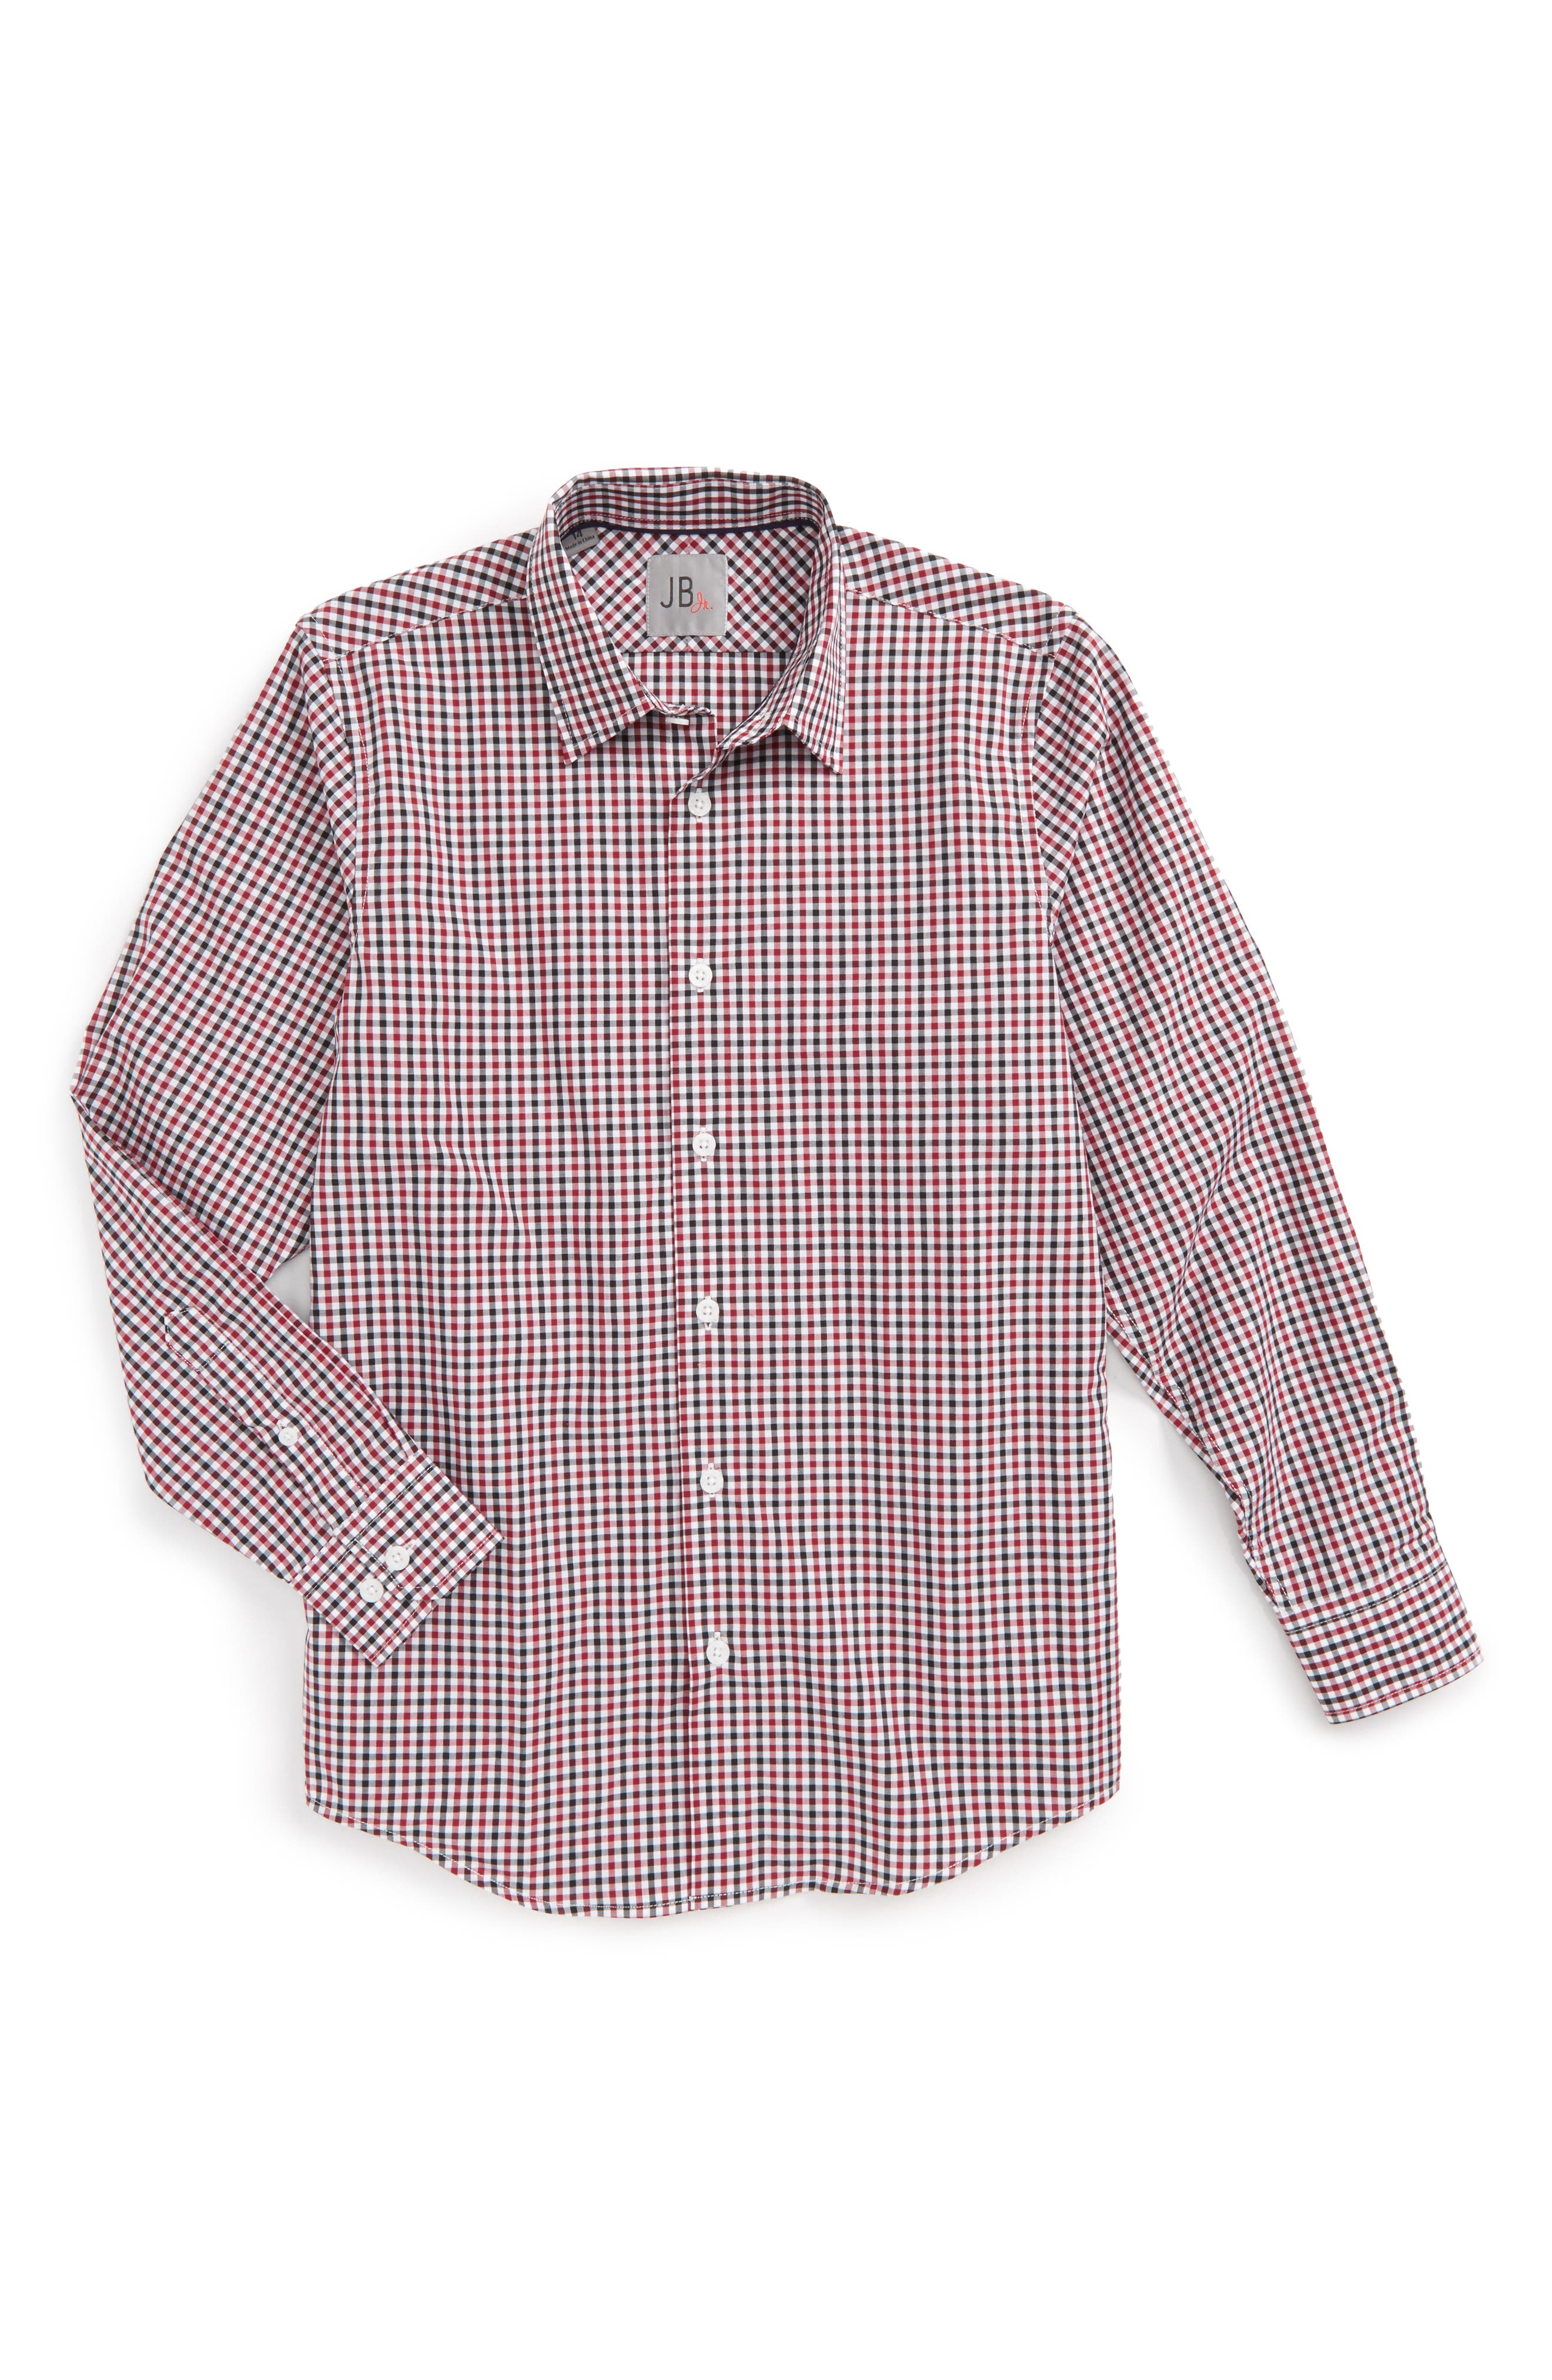 Gingham Dress Shirt,                         Main,                         color, Red/ Black